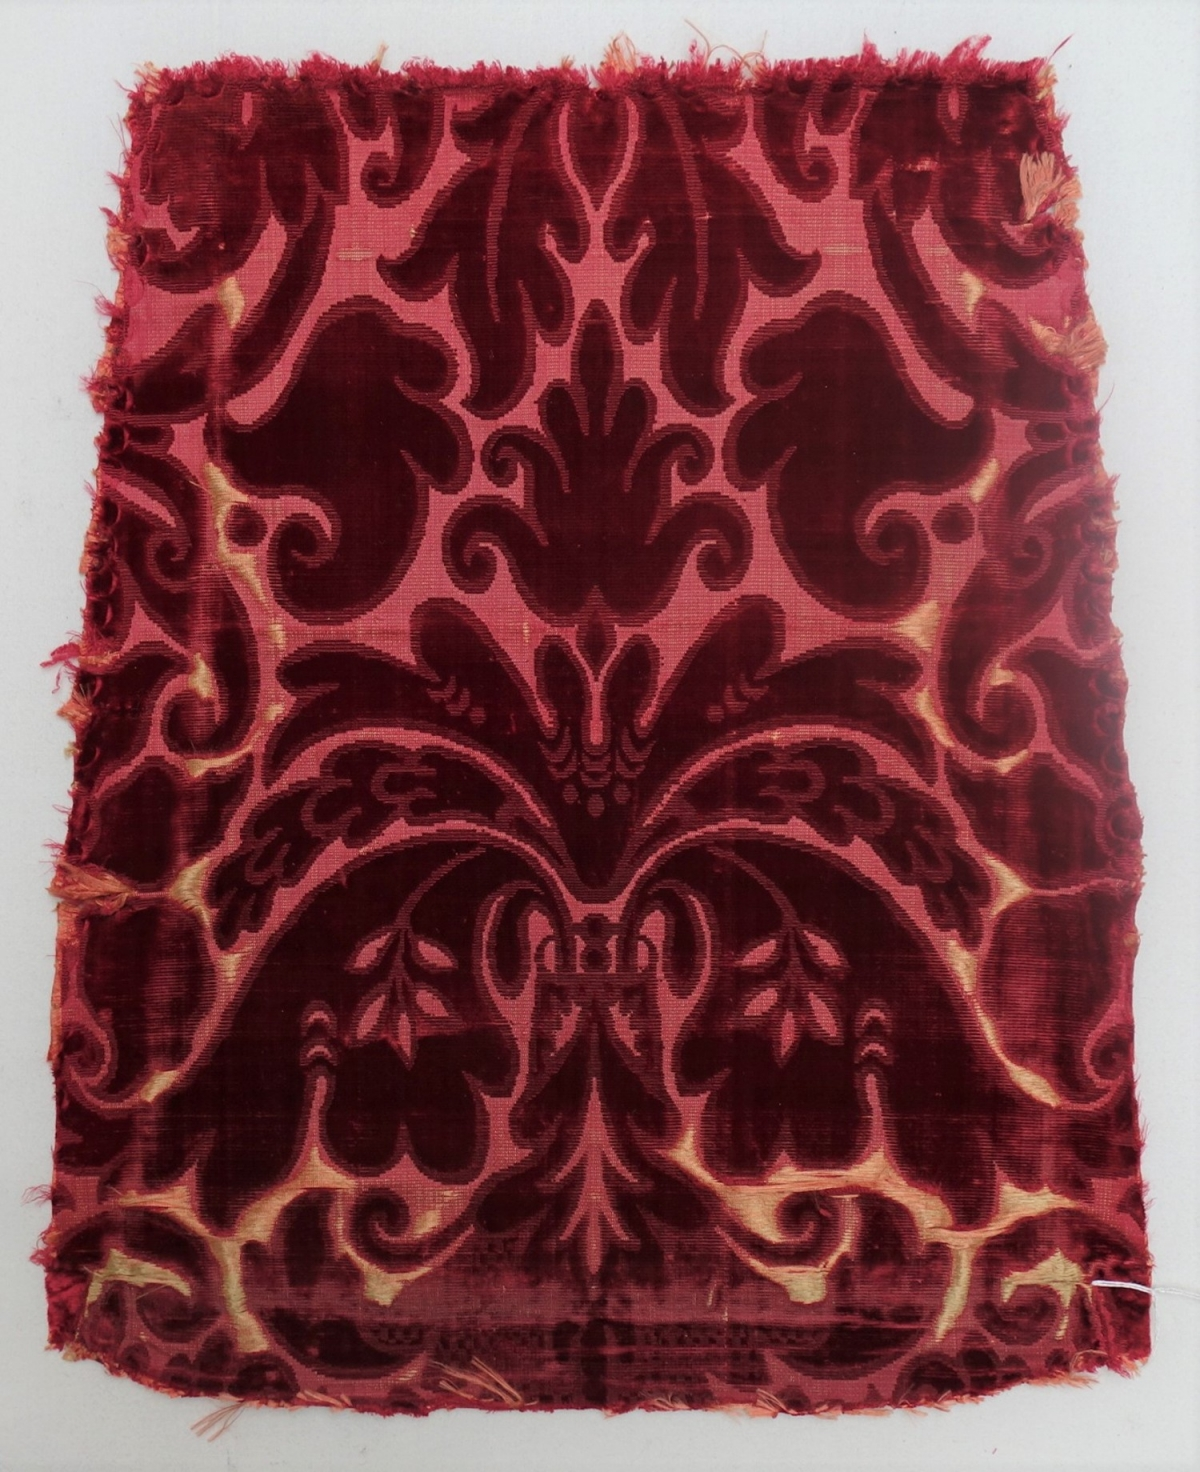 Chair cover in red cicelé velvet in silk (17th century, Europe; TRC 2011.0368).